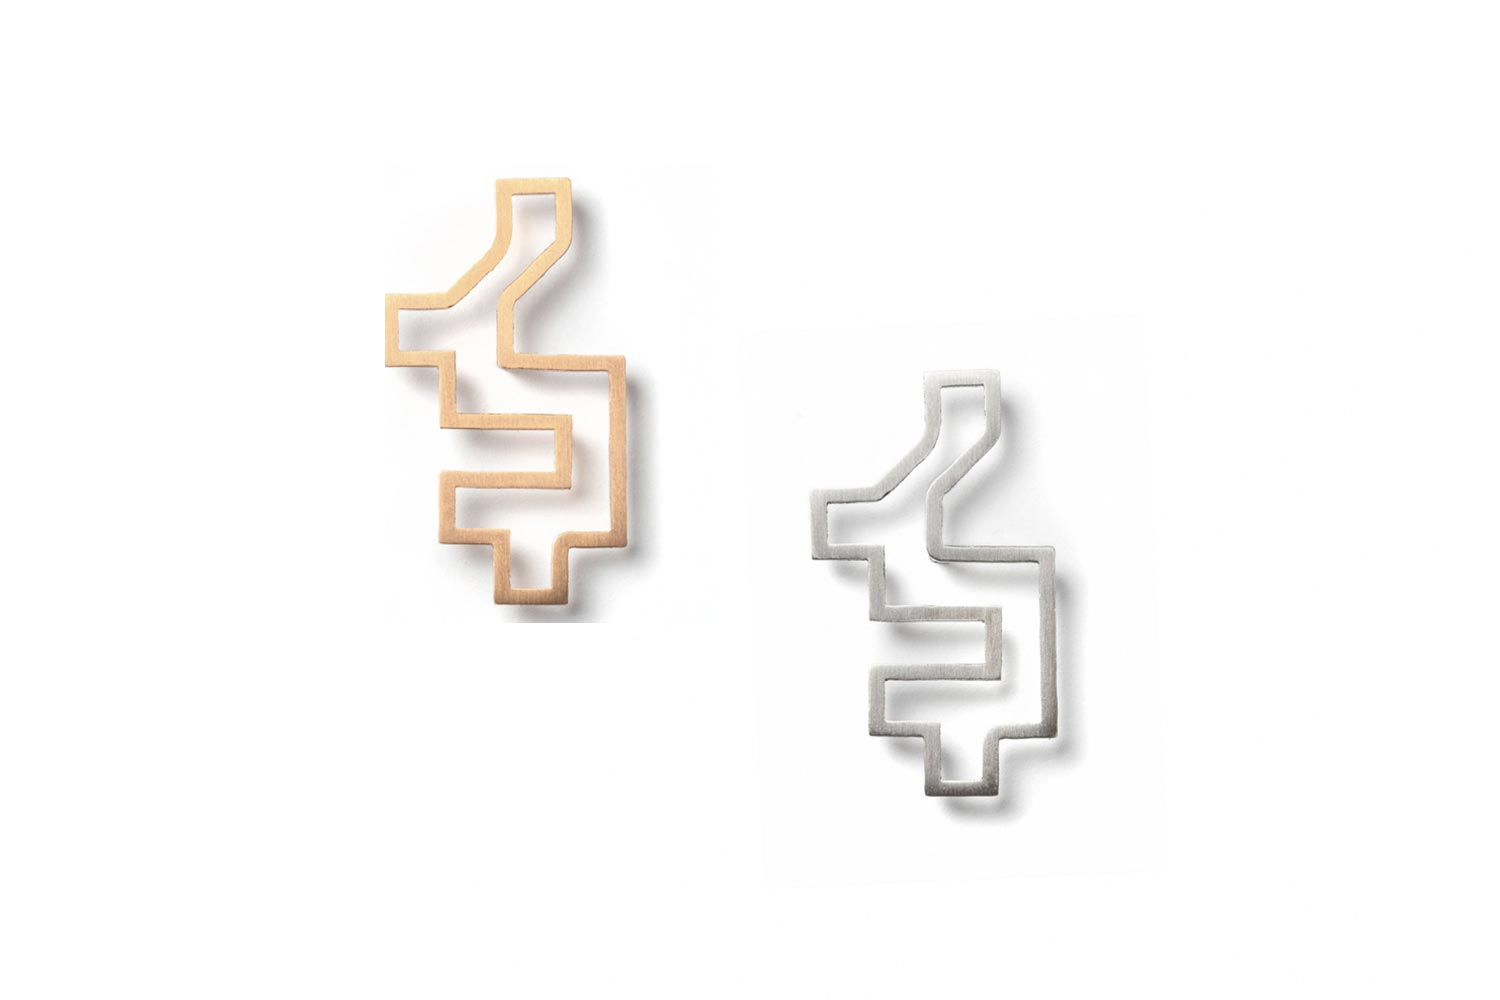 Outline gold silver Pixel Brooch hypoallergenic stainless steel